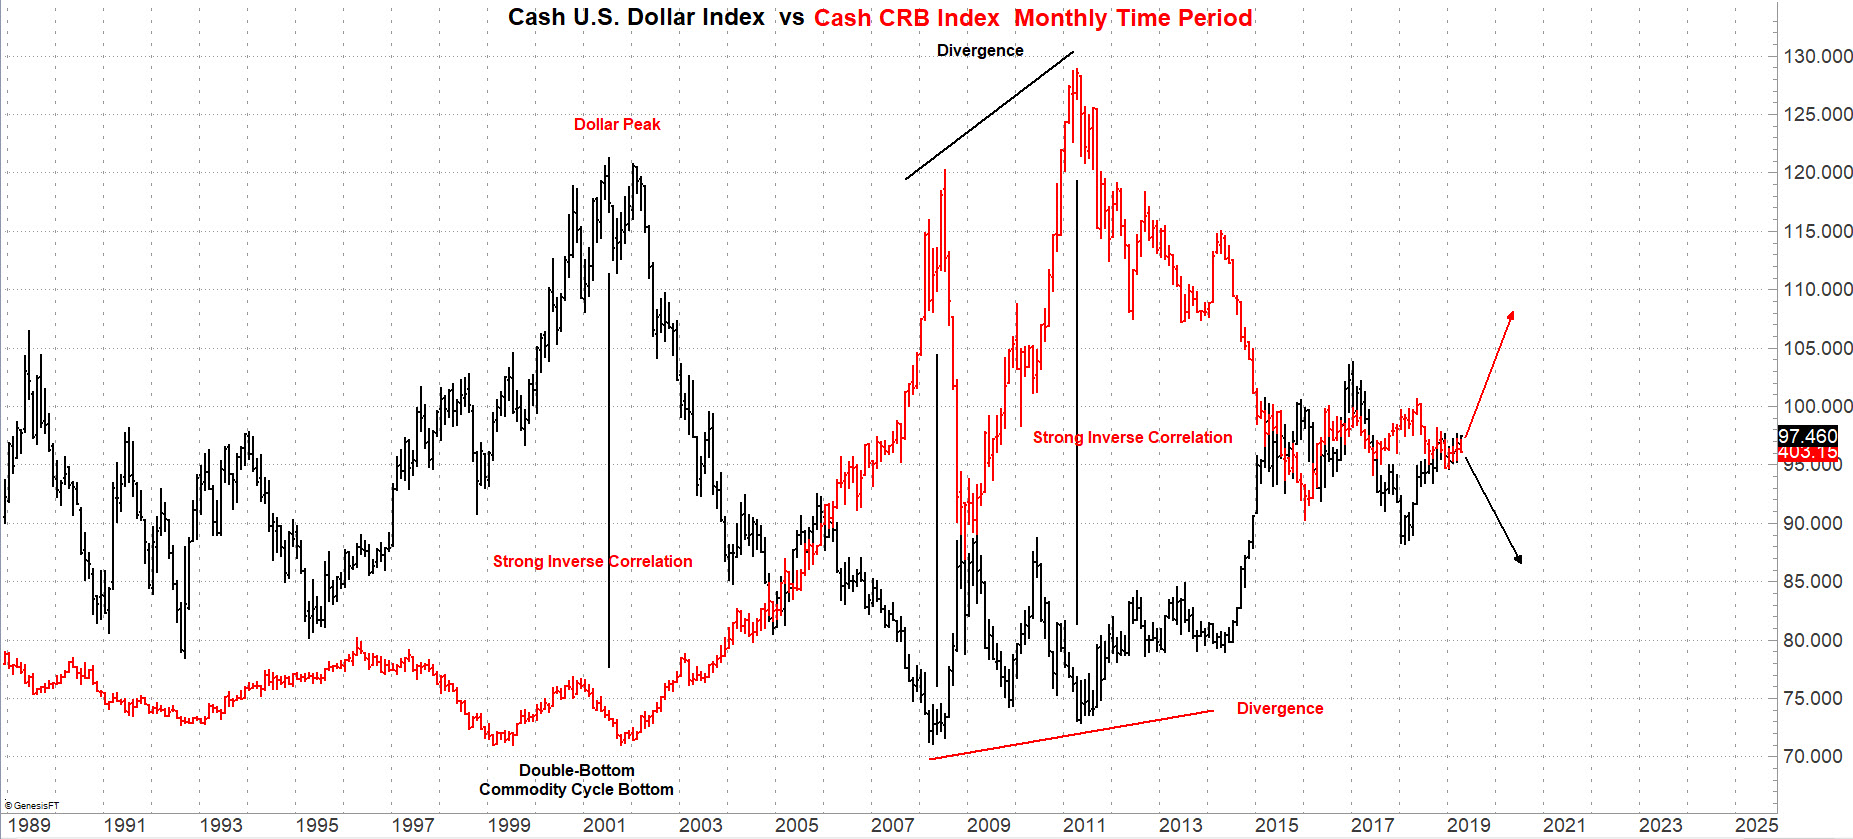 US Dollar Index vs. CRB Index